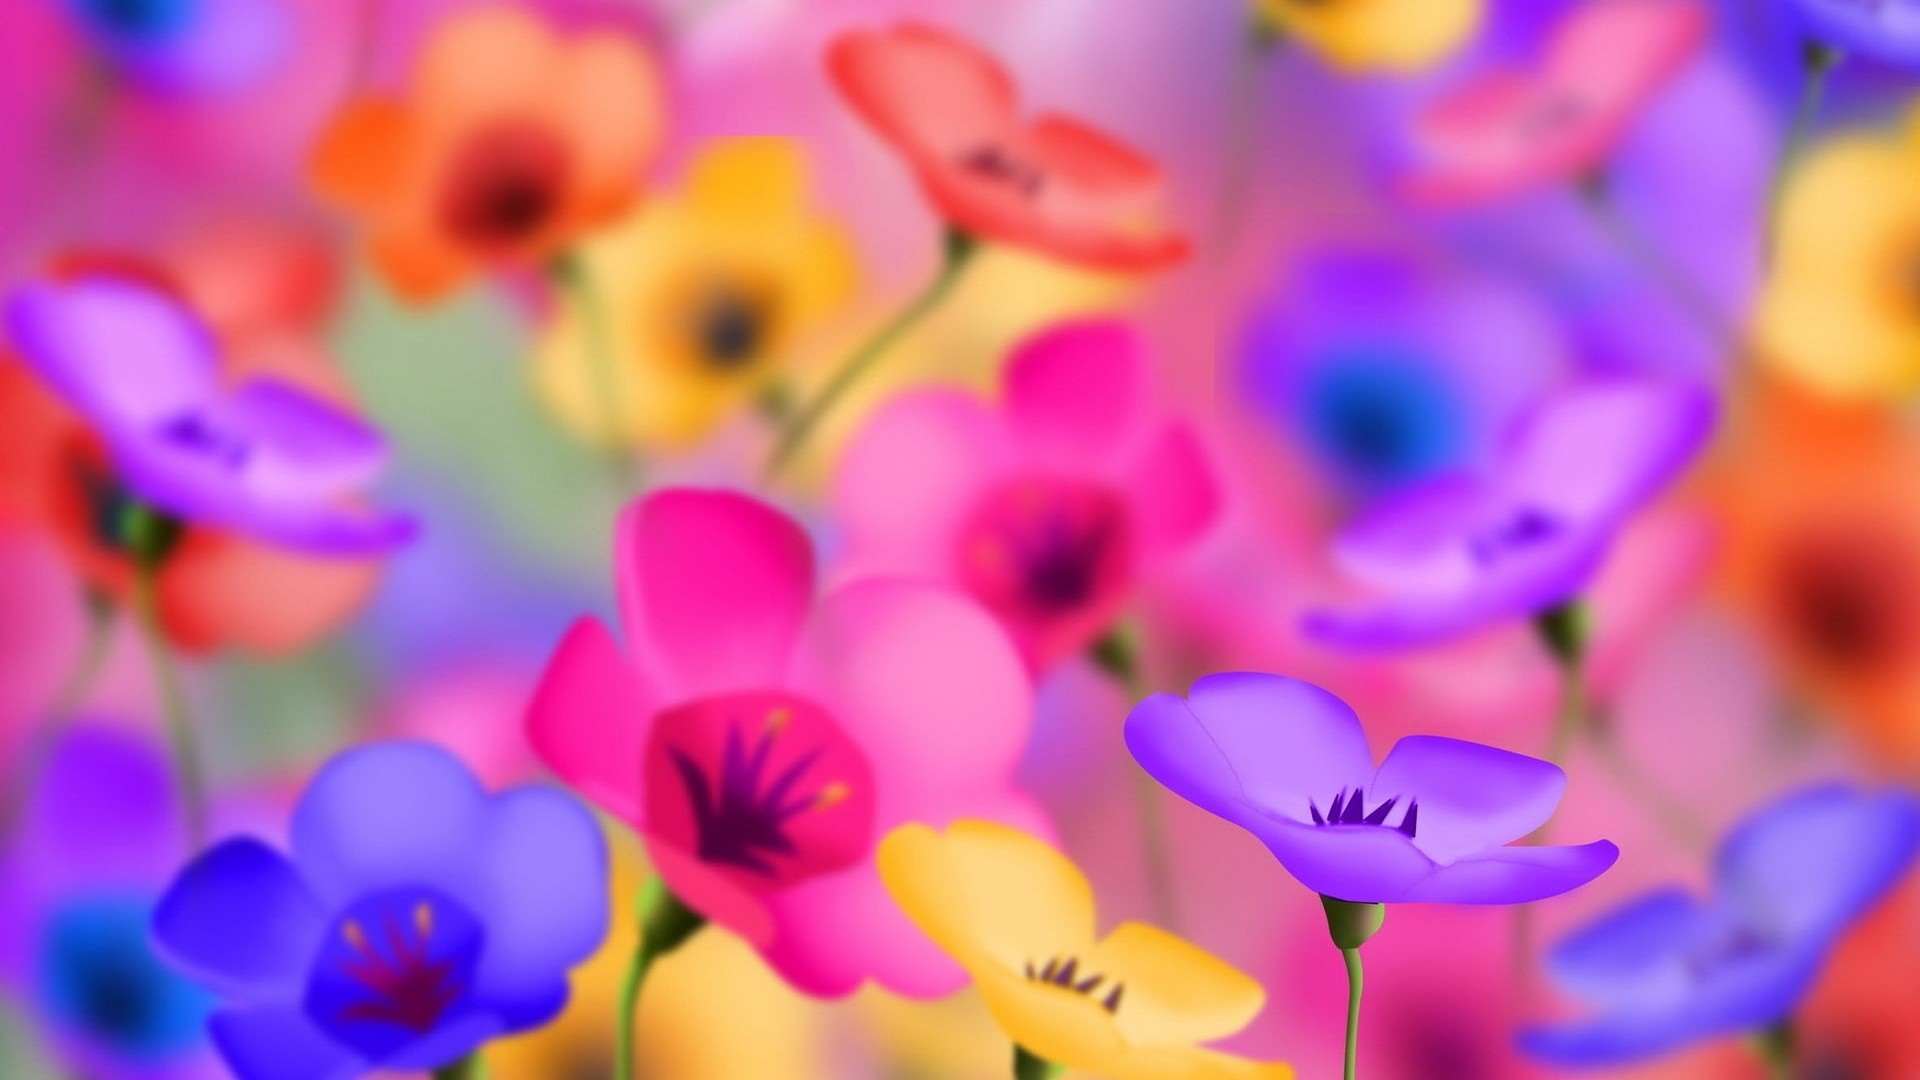 Full Hd Flowers Wallpapers Wallpapertag